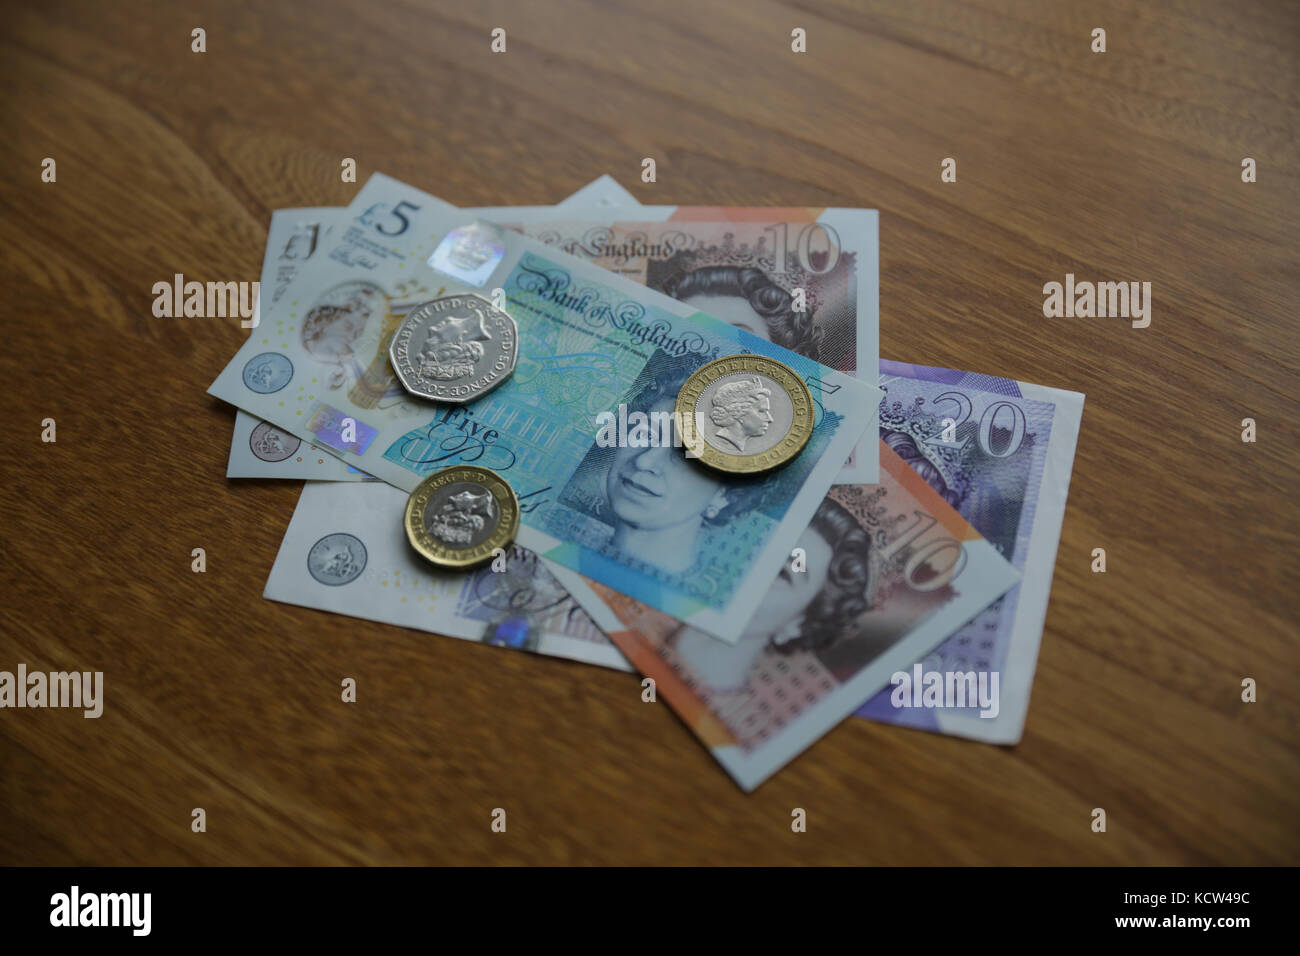 A selection of British currency on a wooden surface Stock Photo